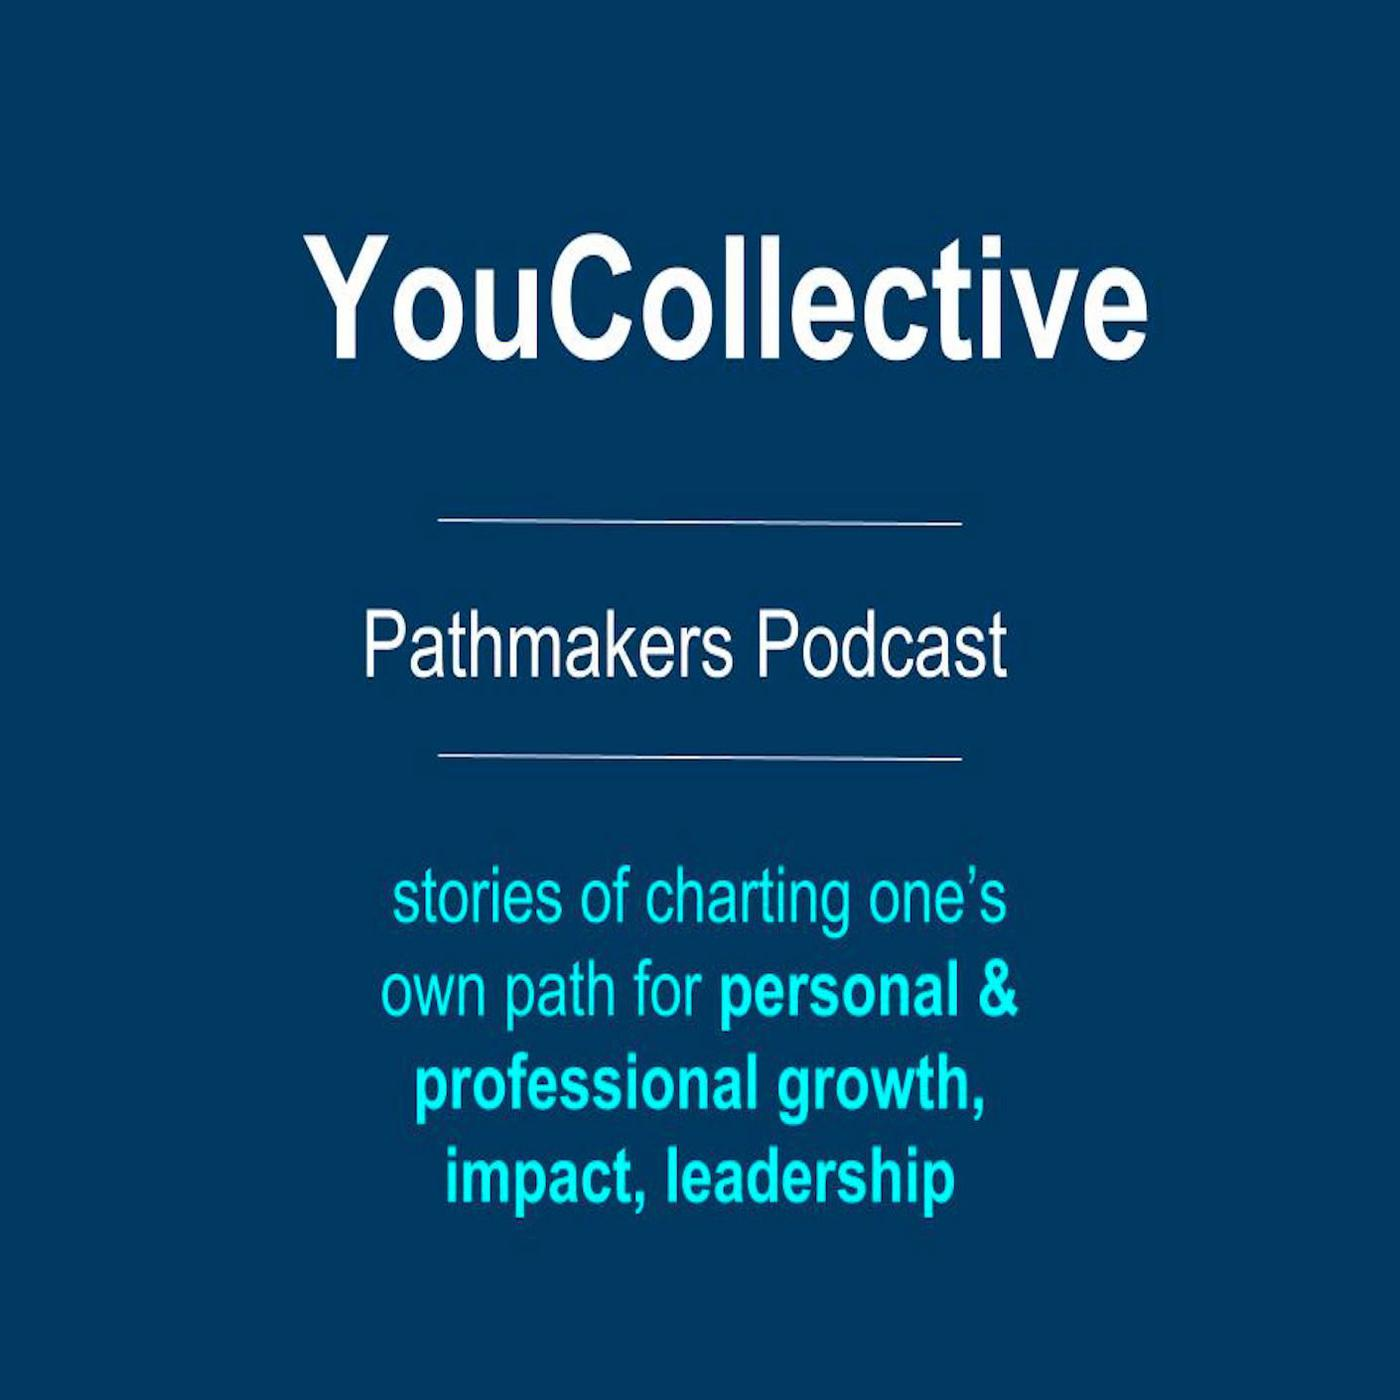 YouCollective Pathmakers Podcast - YouCollective Pathmakers Podcast